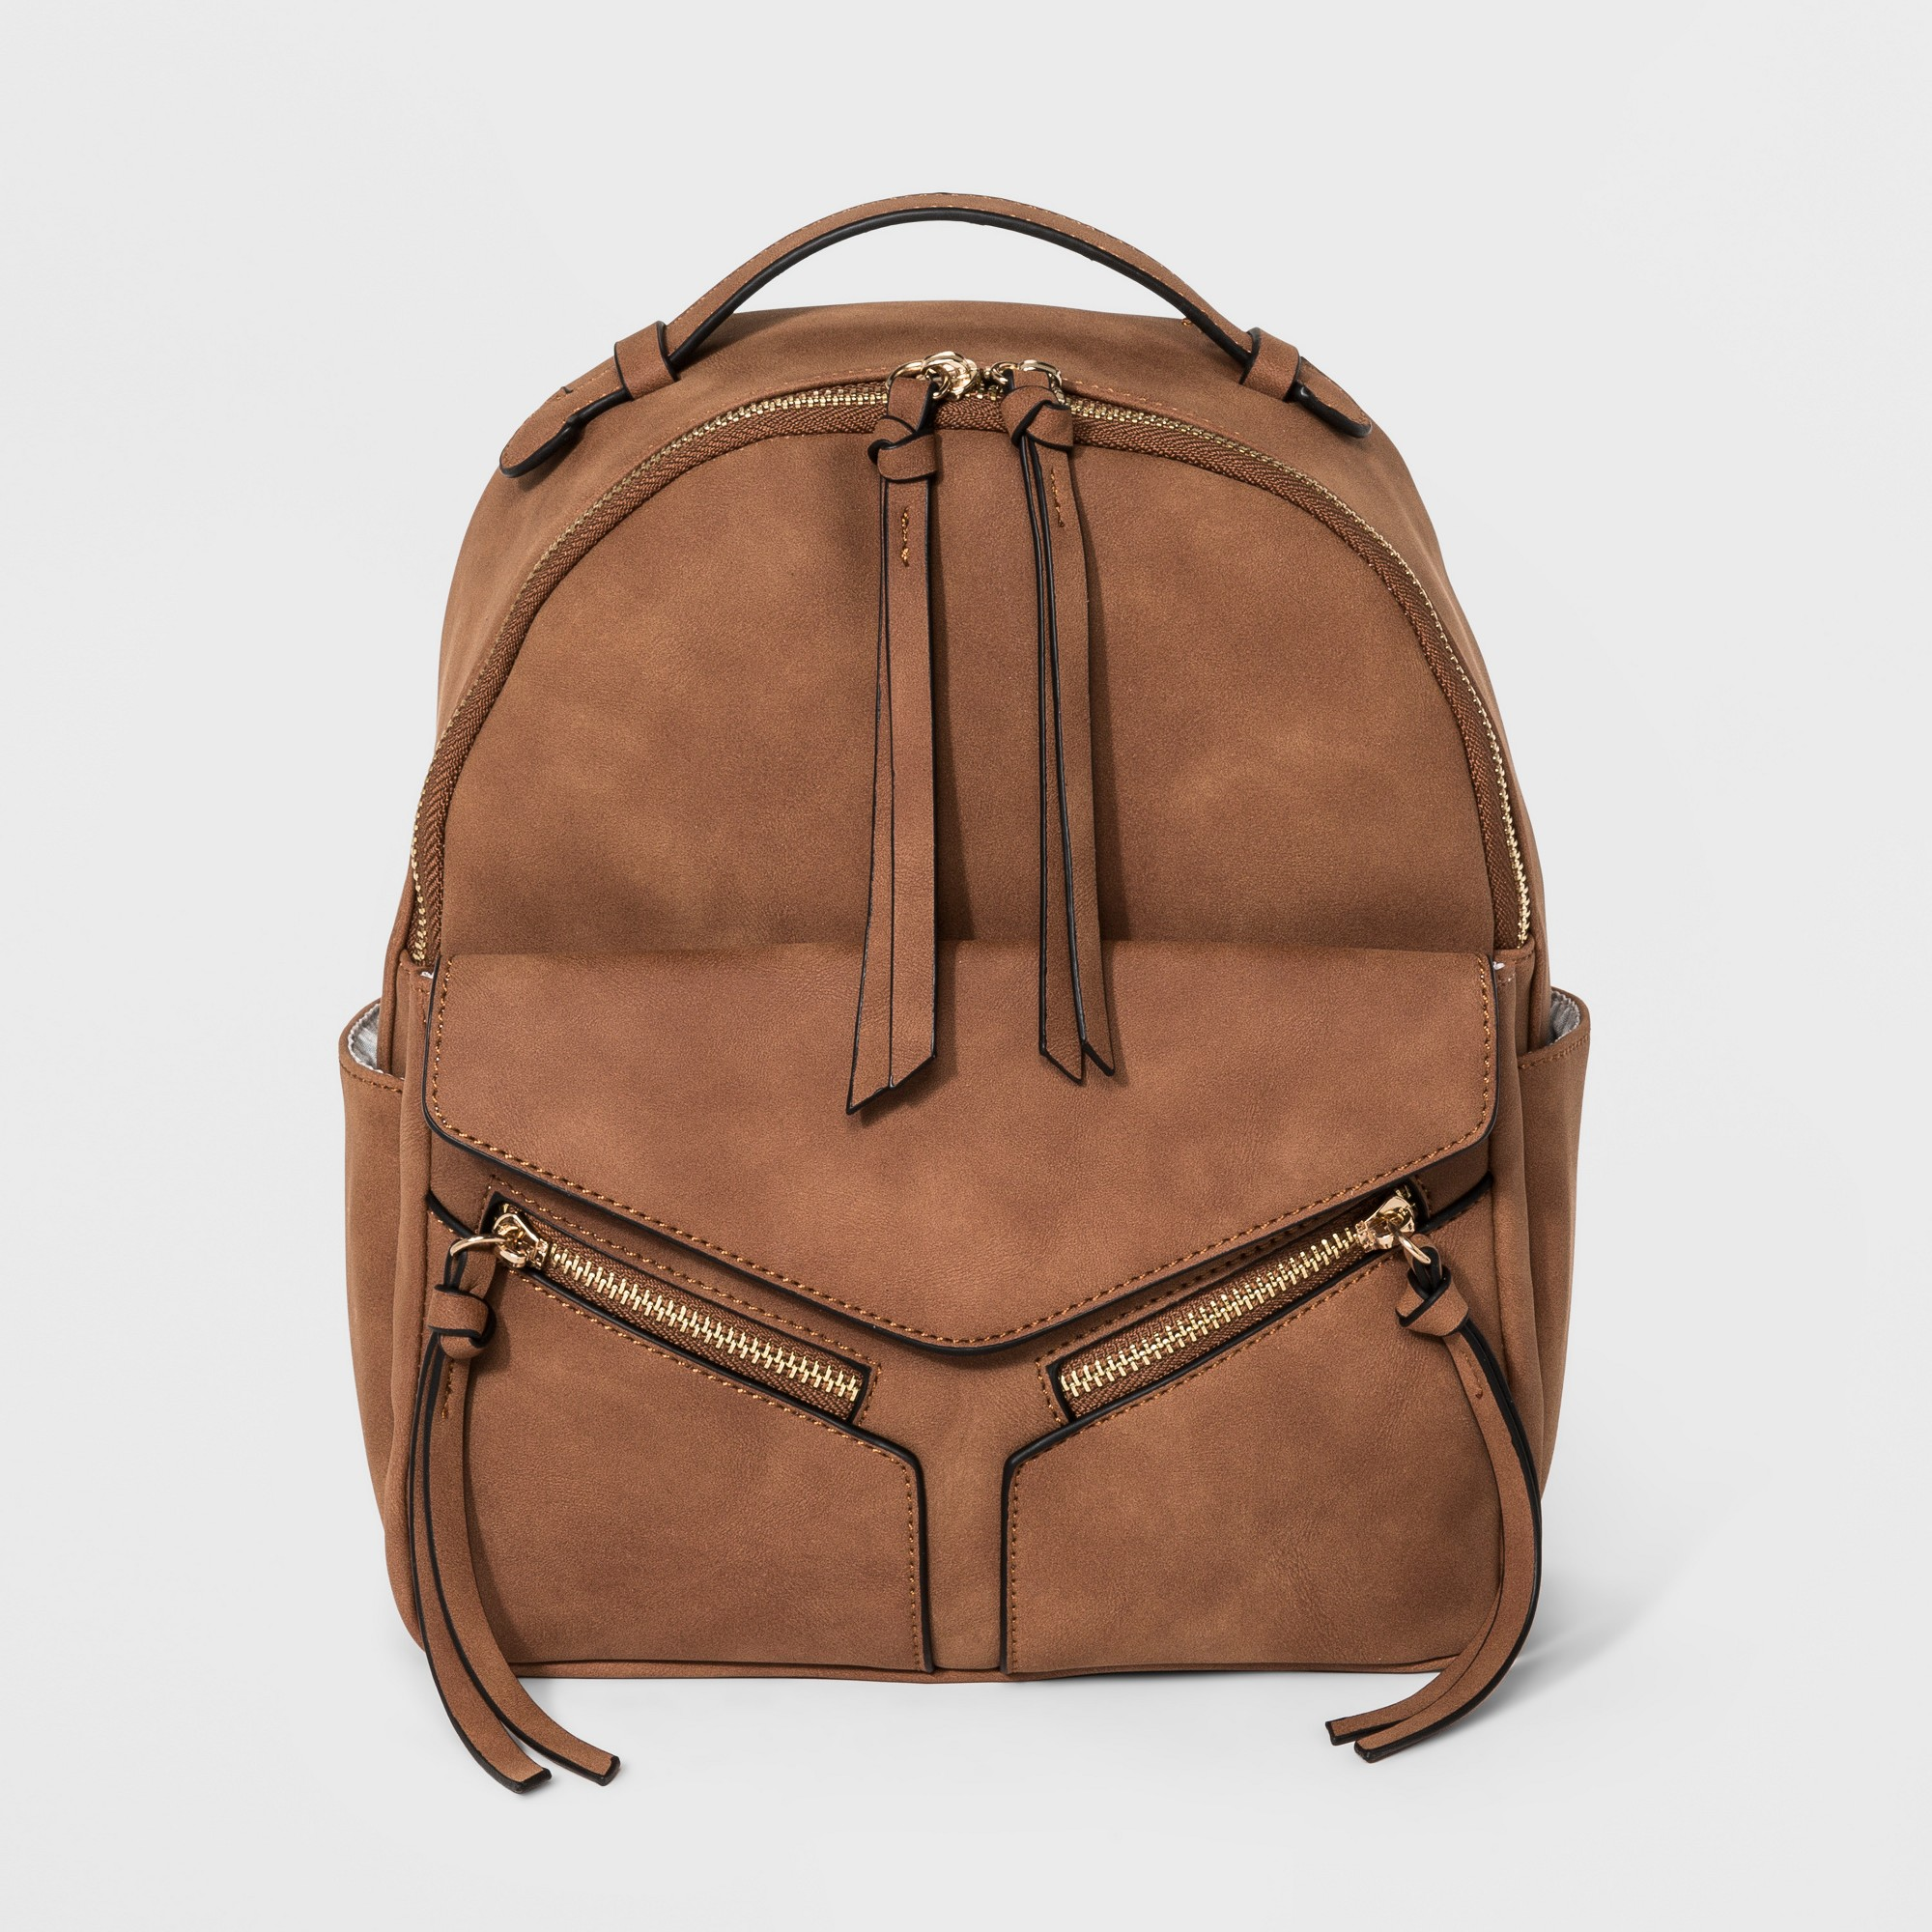 Violet Ray Women s Leanna Backpack - Cognac (Red)   Products in 2018 ... 0df1582f7d